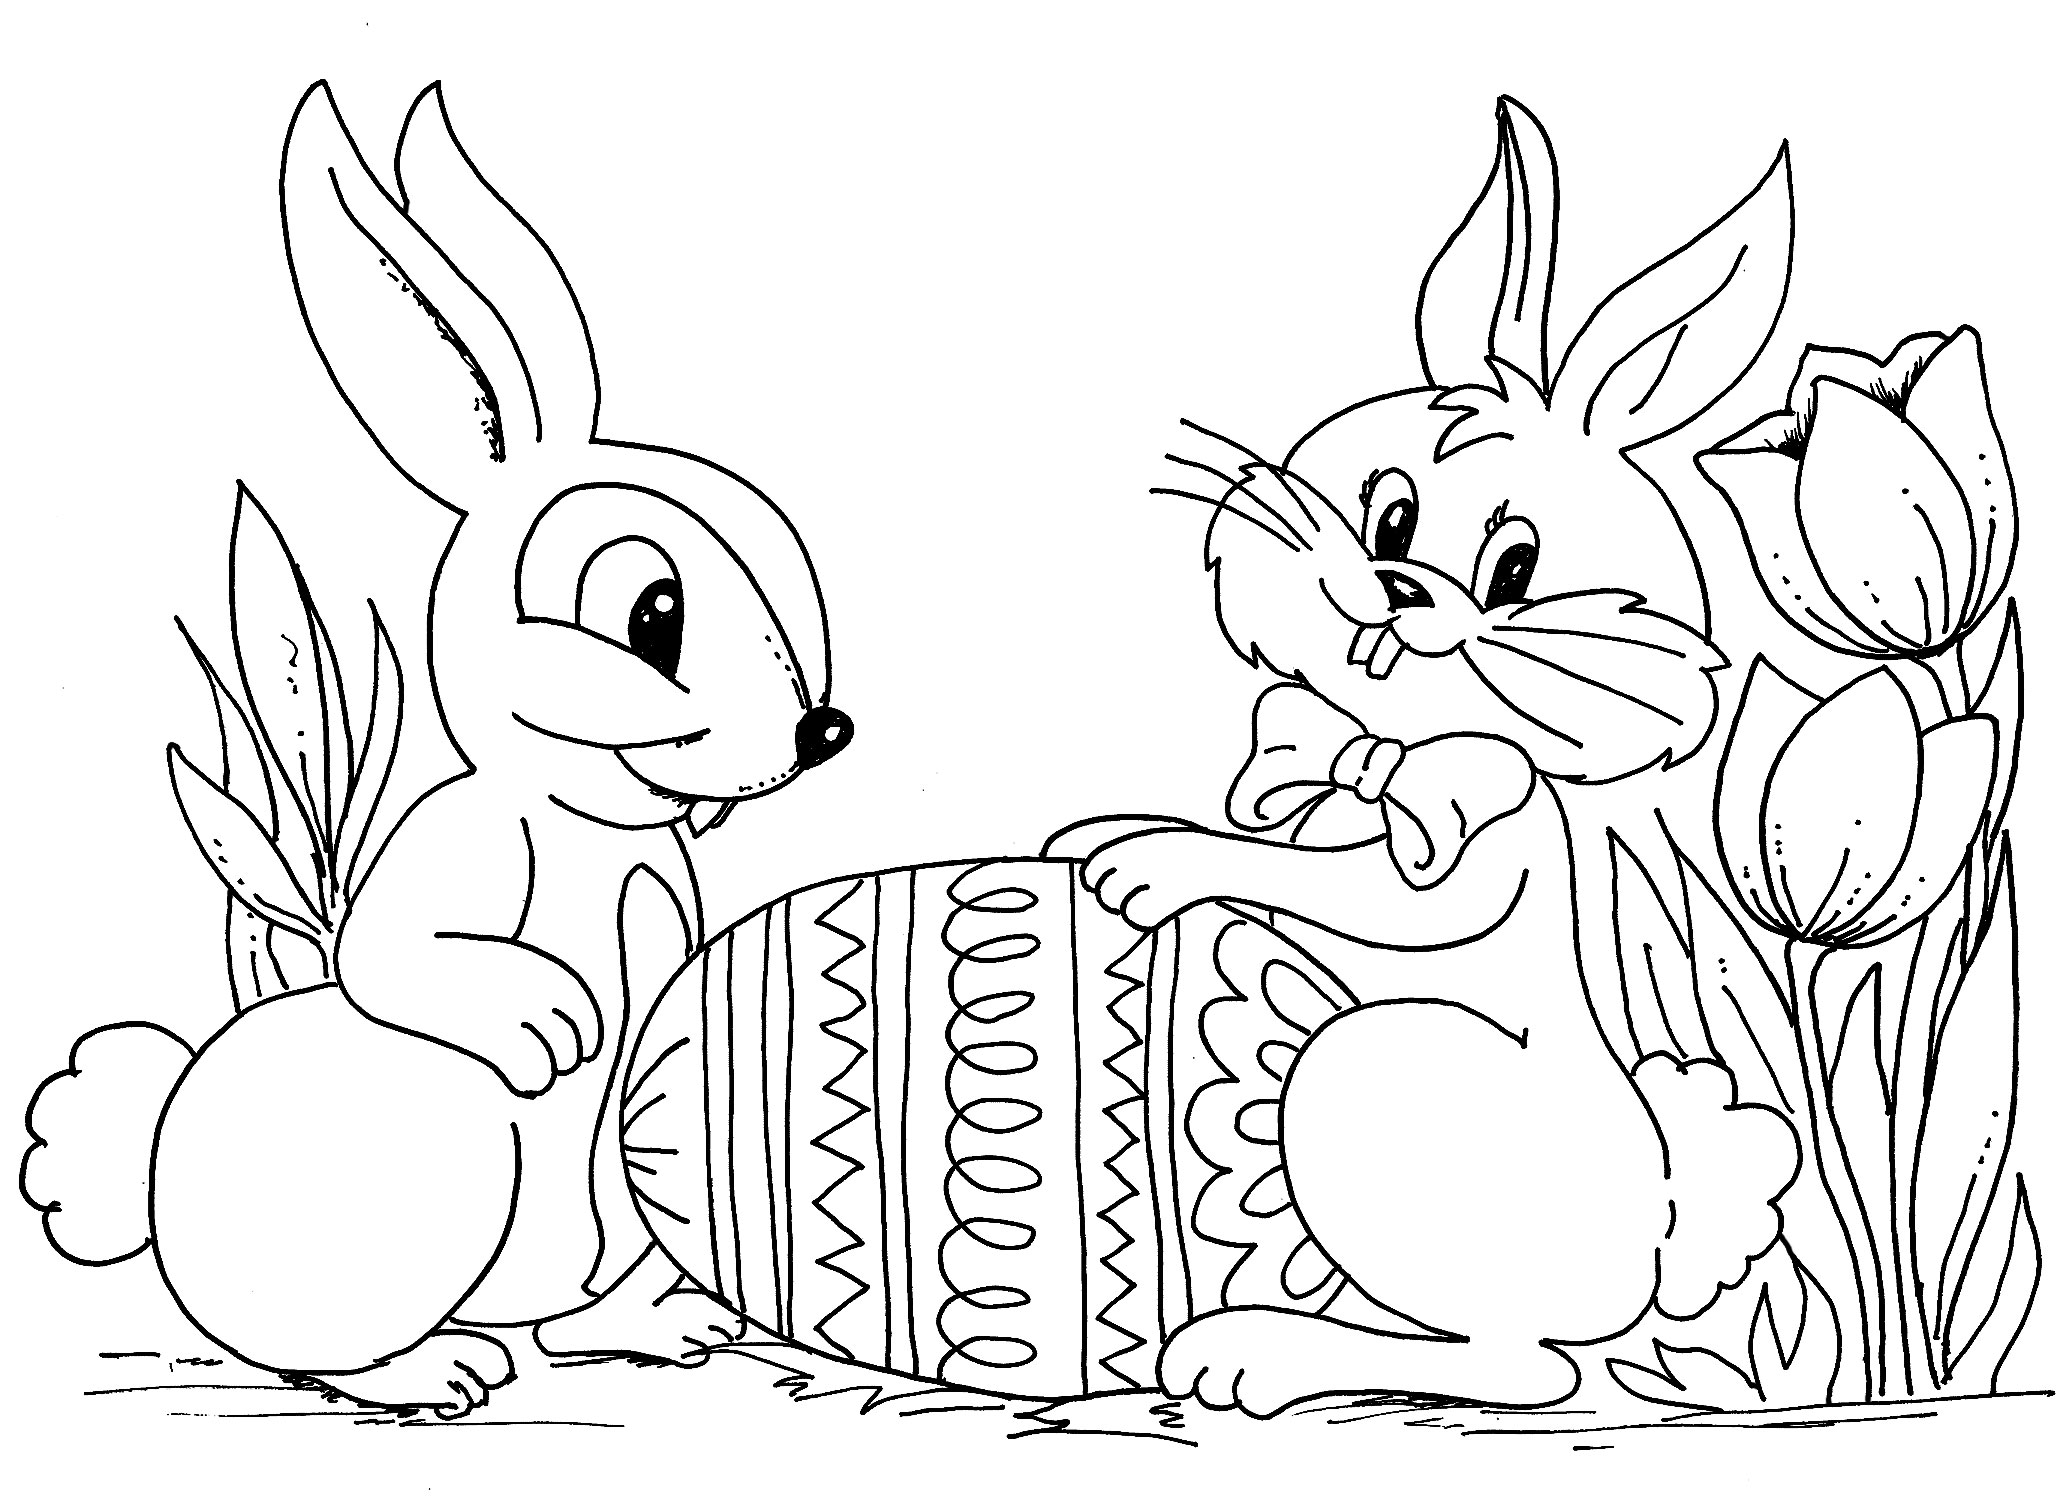 Easter Bunny Coloring Sheet To Print Rabbit Page